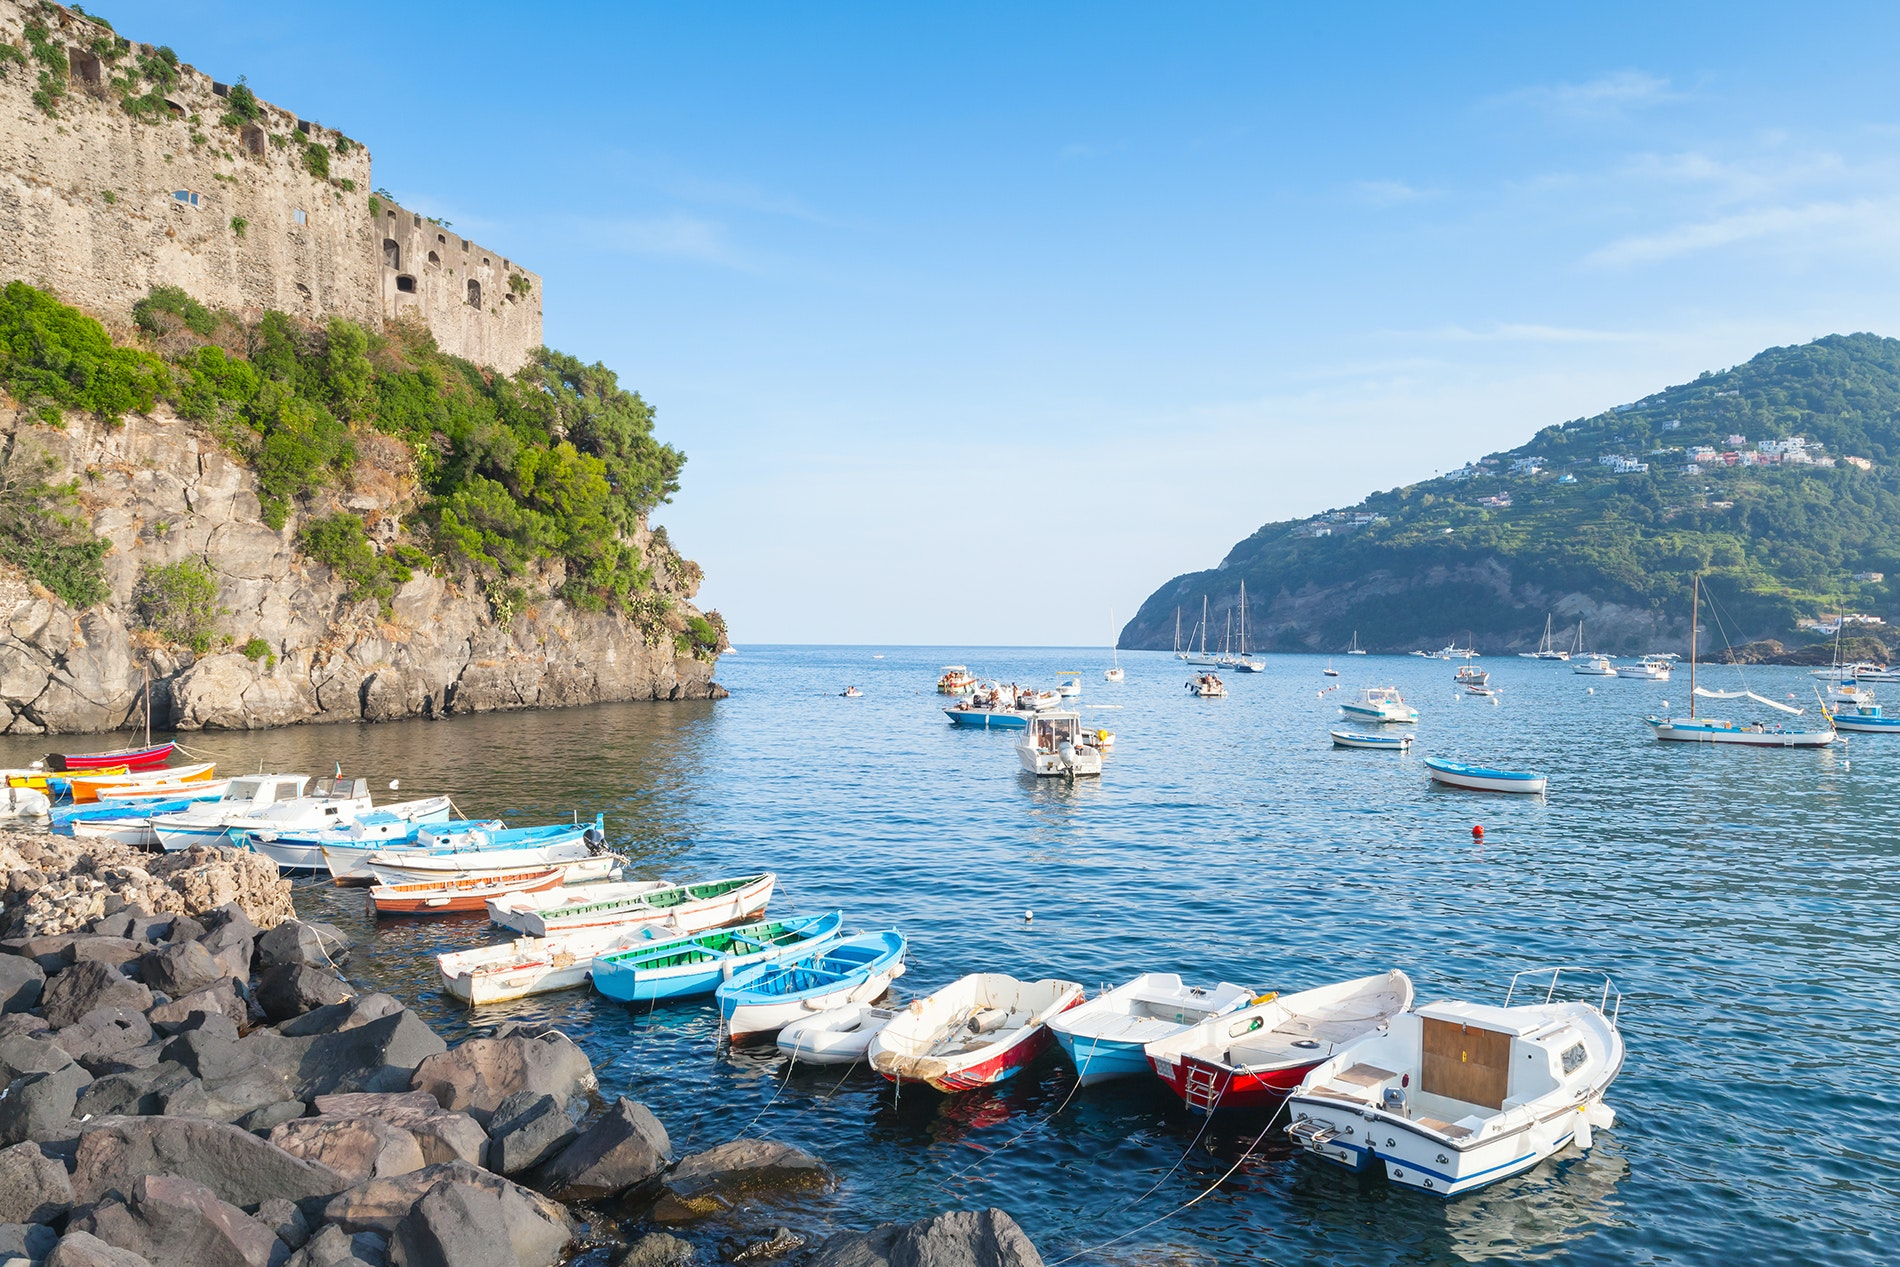 Ischia is a popular vacation spot for Neapolitans and other Europeans.